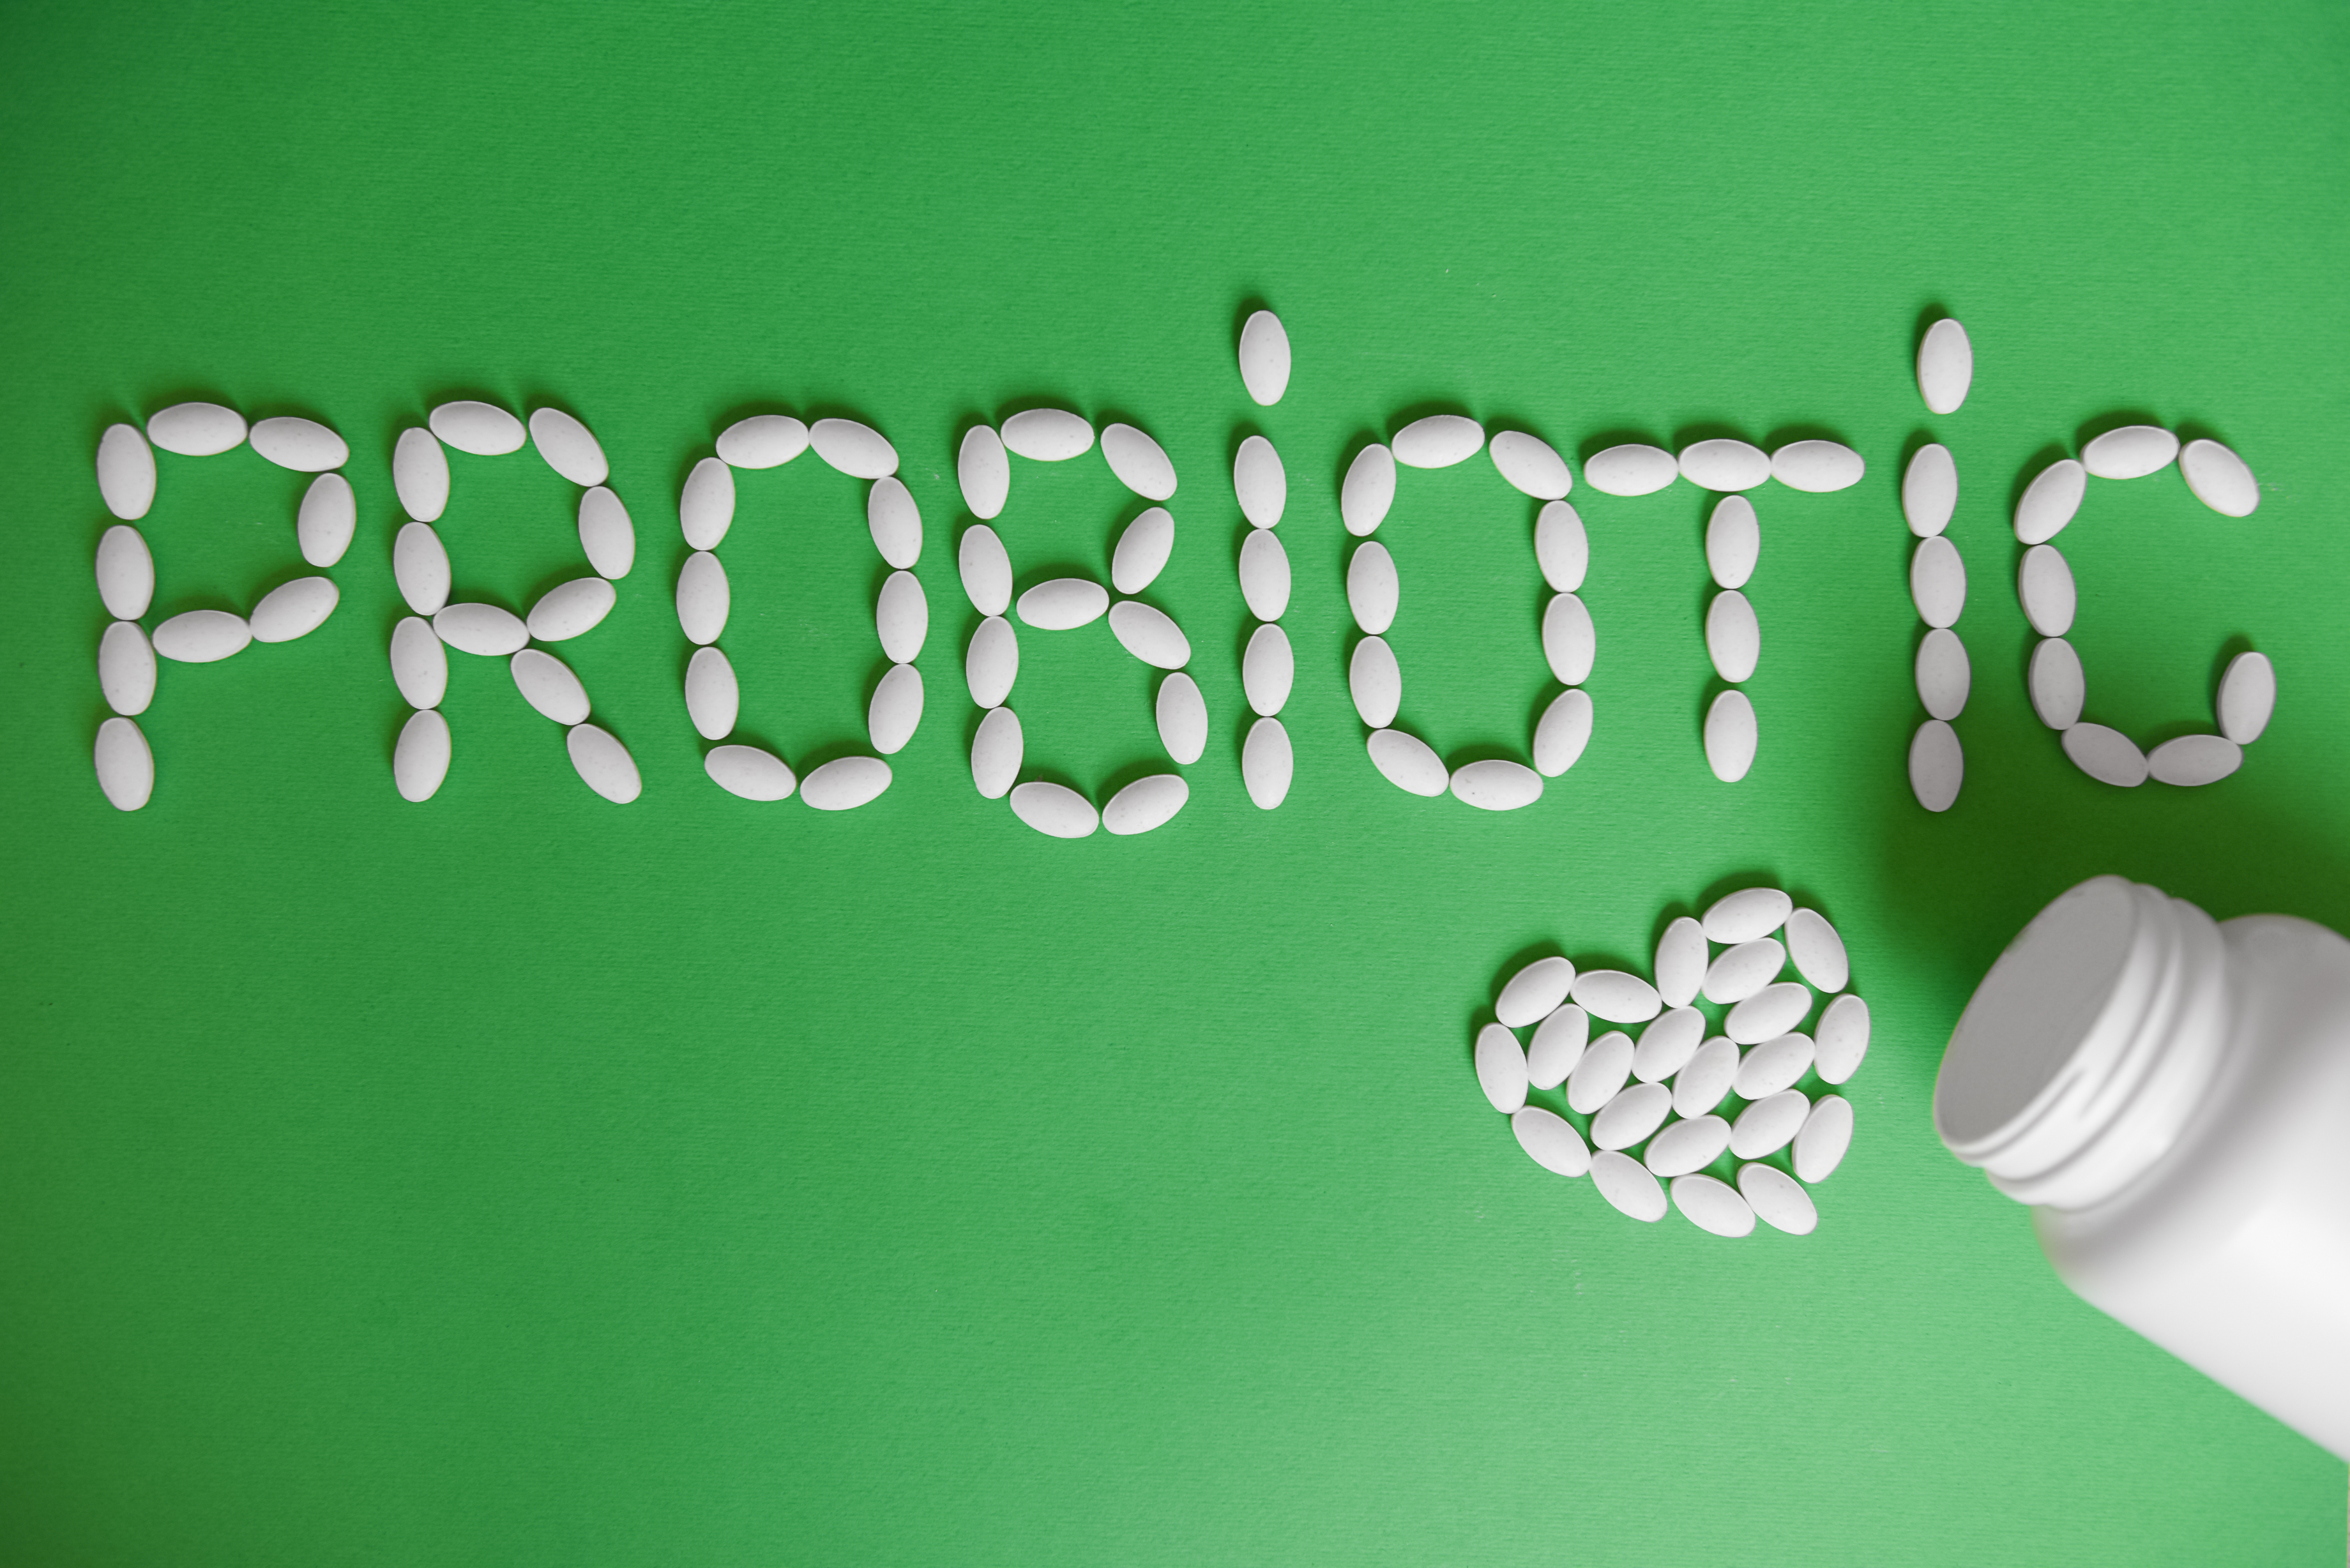 Word probiotic on a green background. probiotic capsules for health.